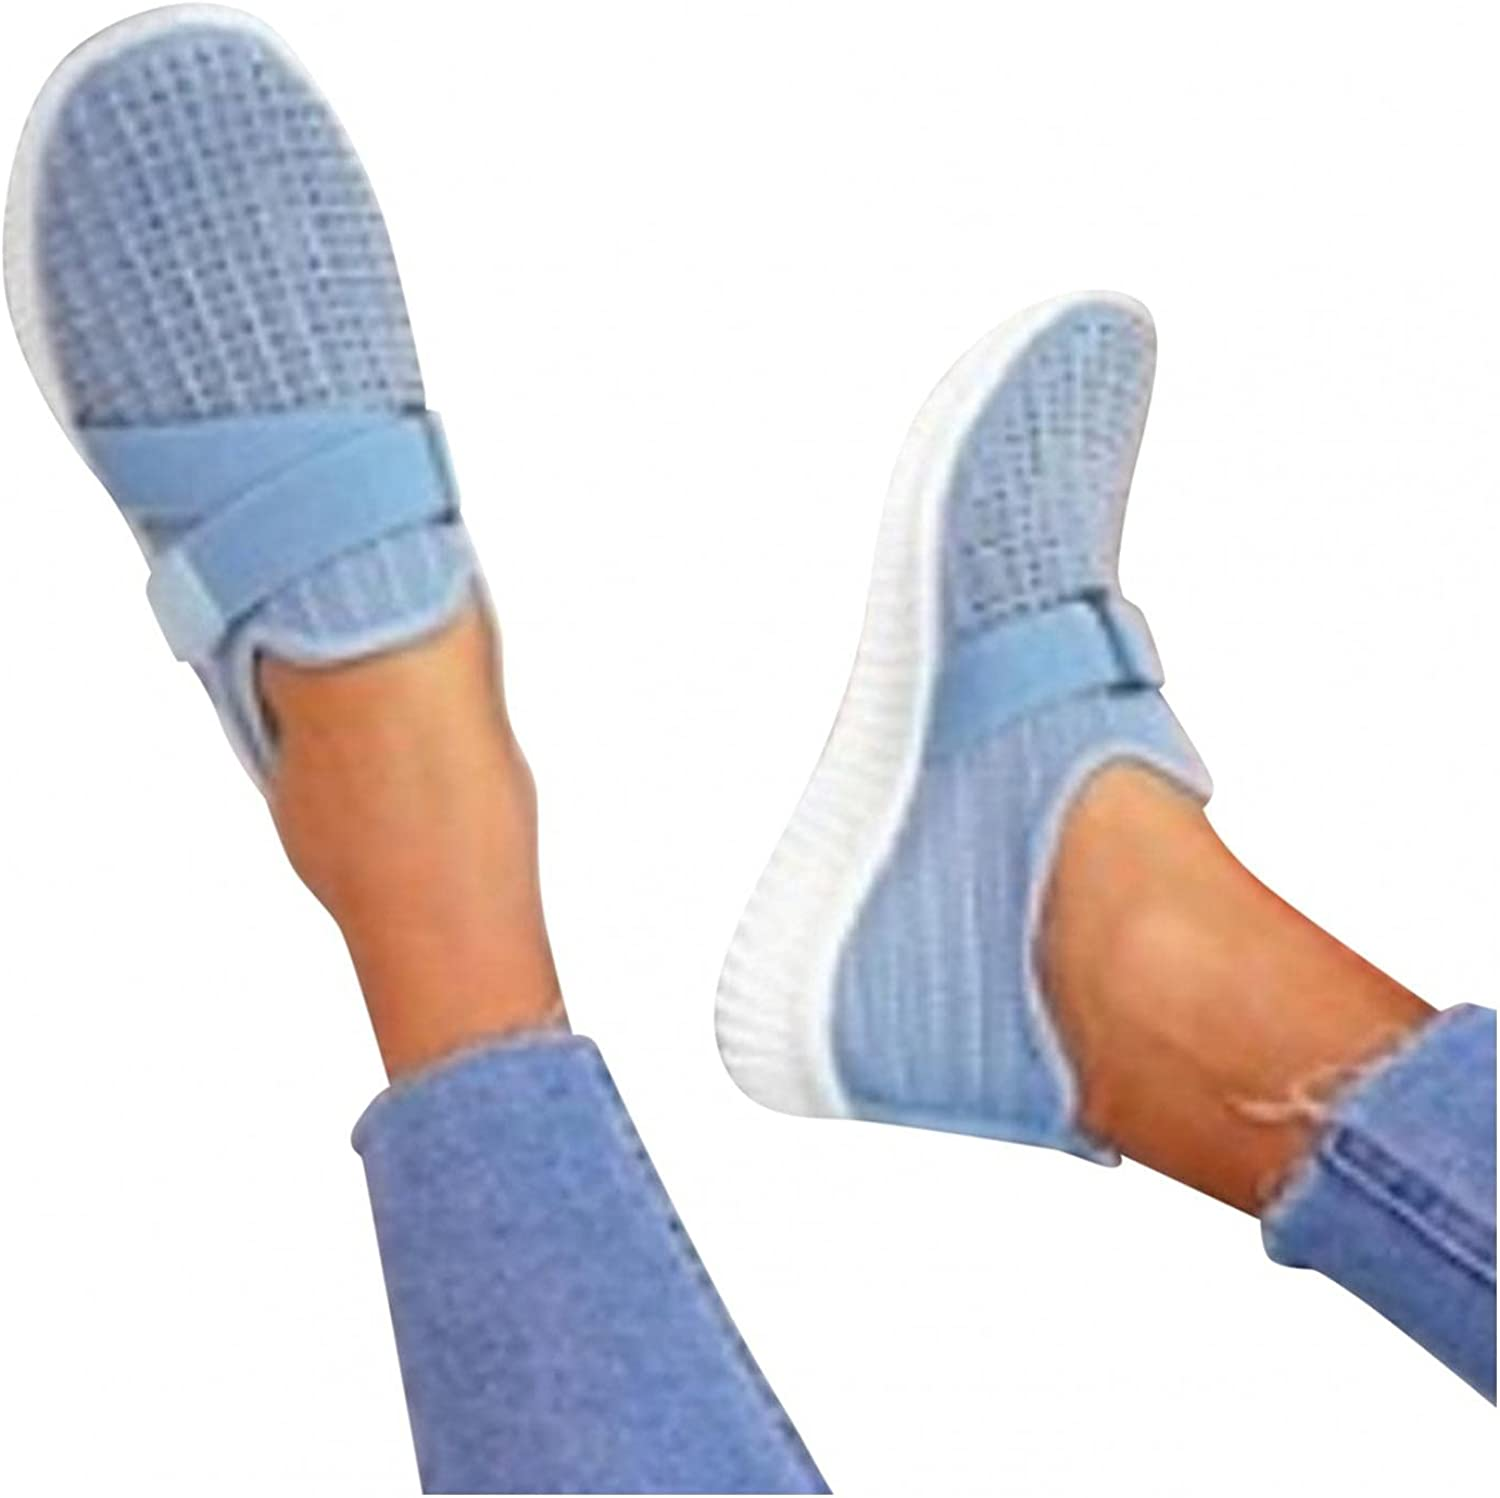 Hbeylia Walking Shoes For Women Fashion Casual Beads Platform Memory Foam Athletic Running Hiking Sports Shoes Lightweight Breathable Tennis Trainers For Skateboard Skiing Work Nurse